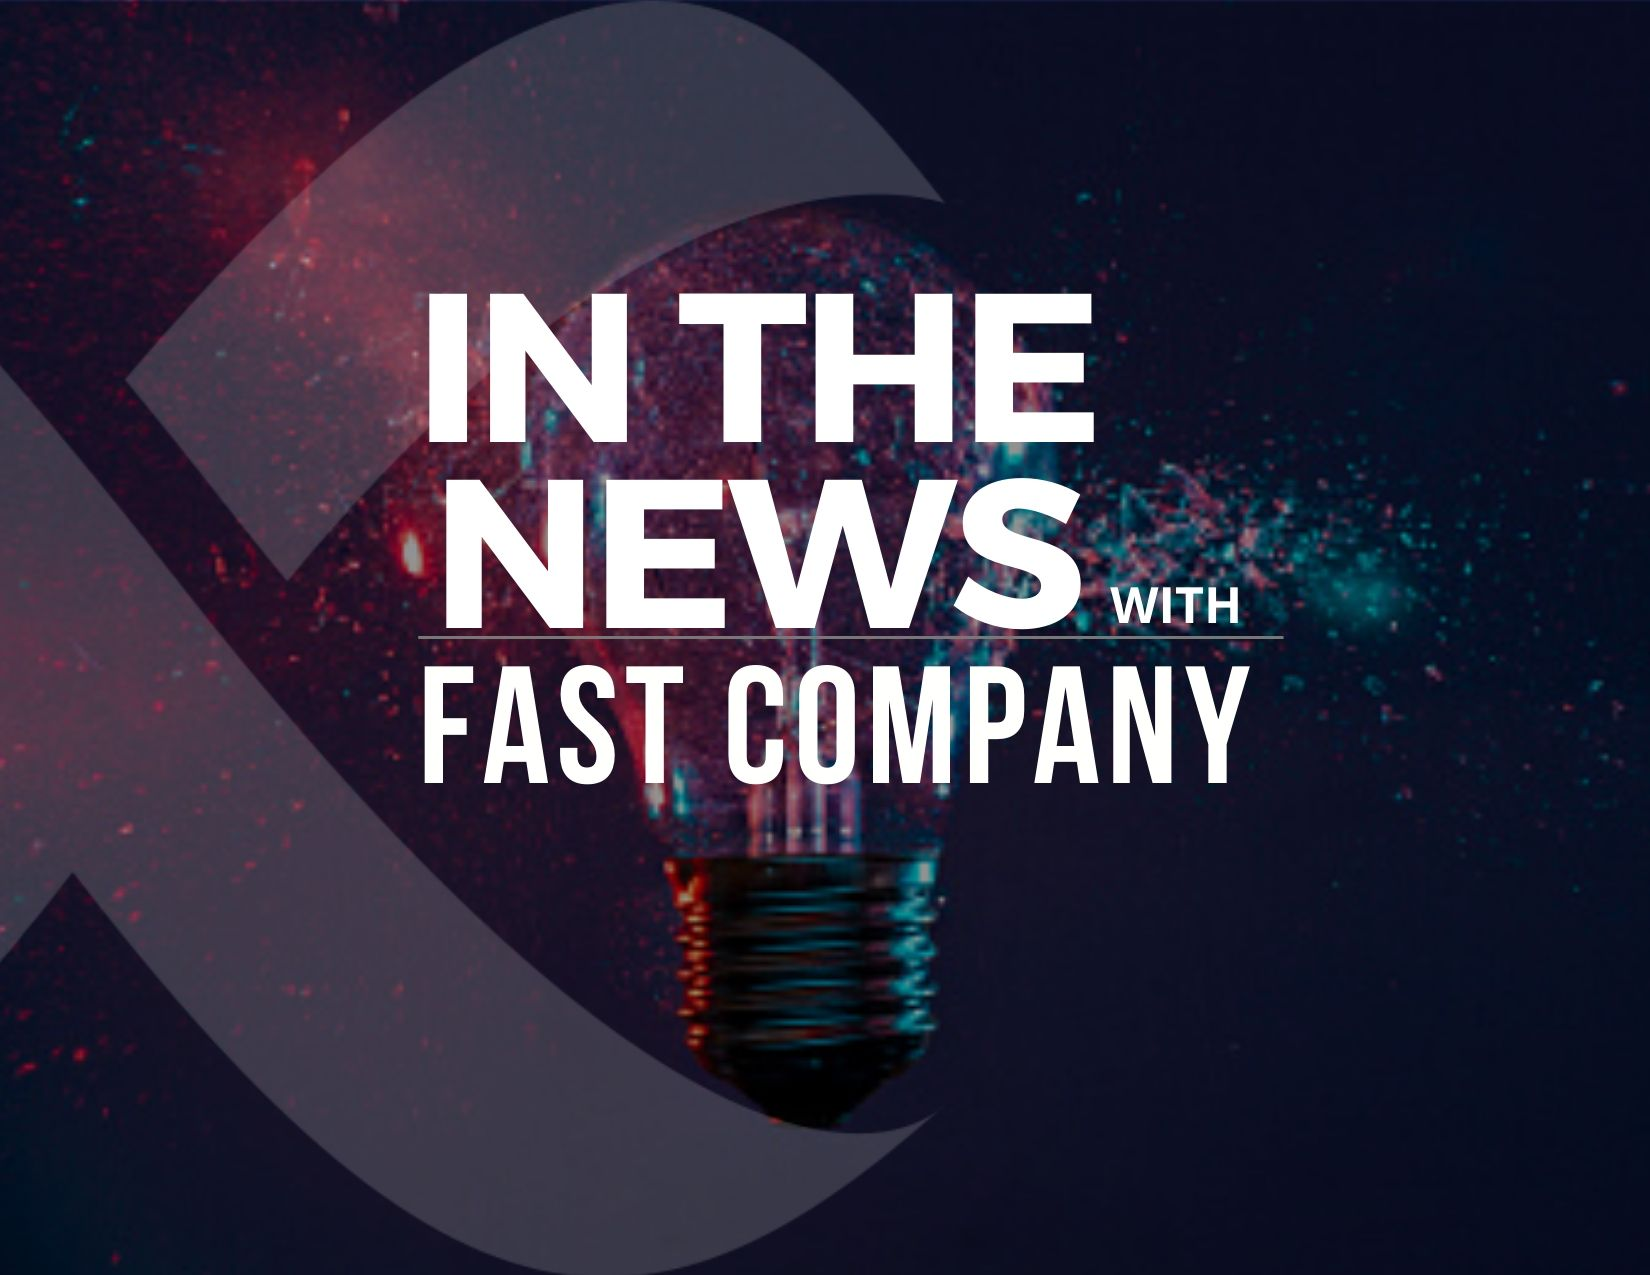 Fast Company published their annual ranking of the businesses making the most profound impact on both industry and culture showcases a variety of ways to thrive in today's volatile world. Quantum Xchange Debuts at #4 on List of Most Innovative Security Companies 2020